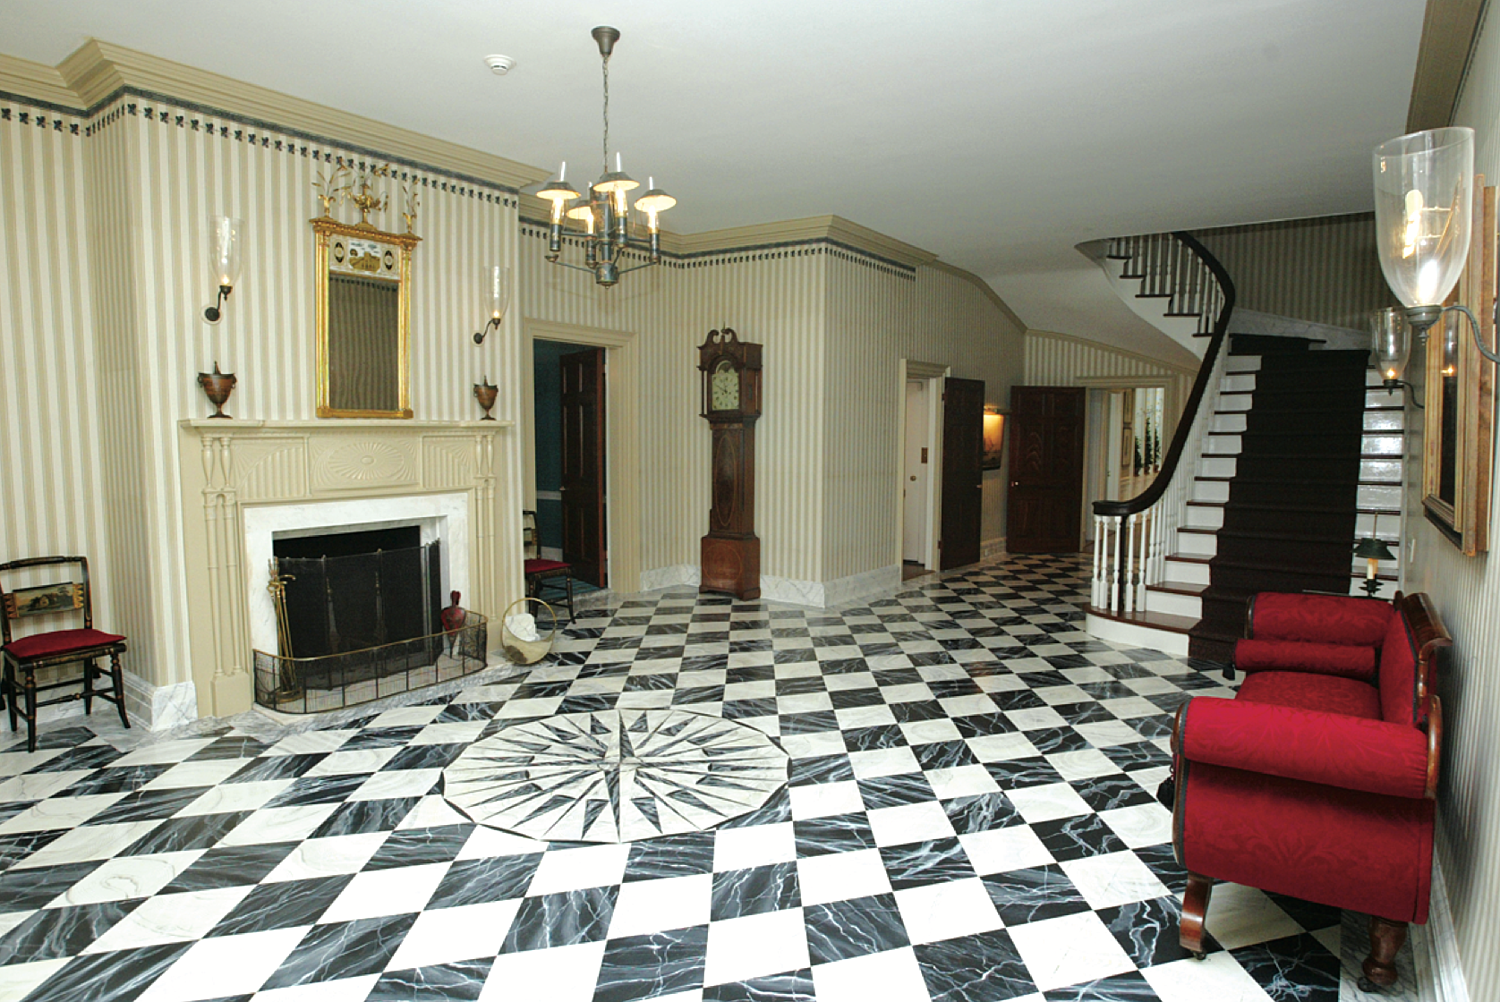 The Foyer of Gracie Mansion